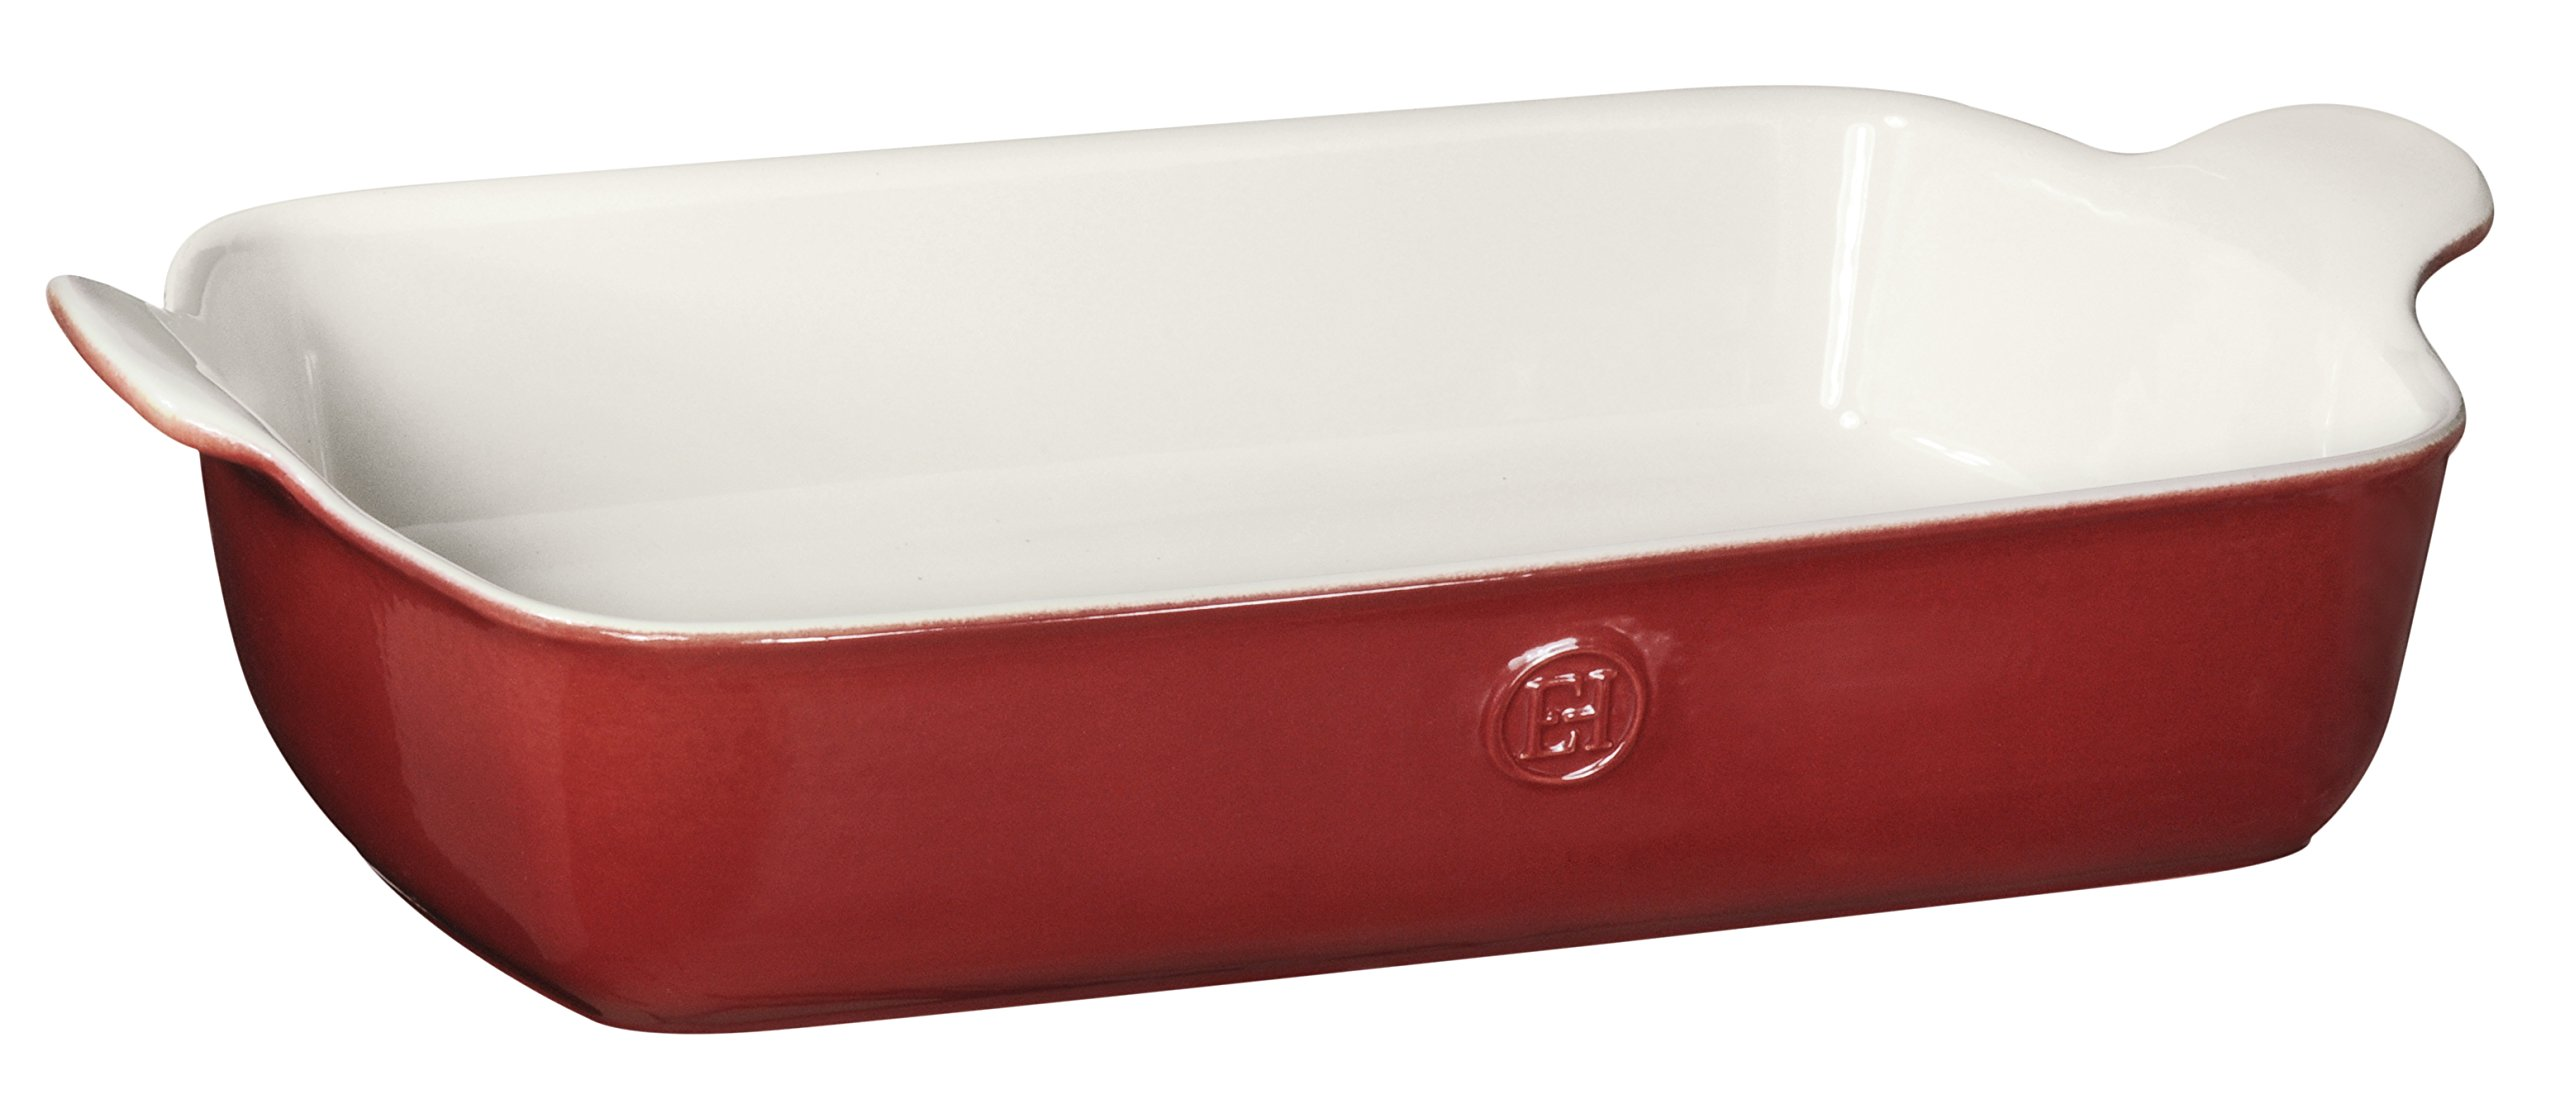 Emile Henry Made In France HR Modern Classics Large Rectangular Baker, 13 x 9, Red